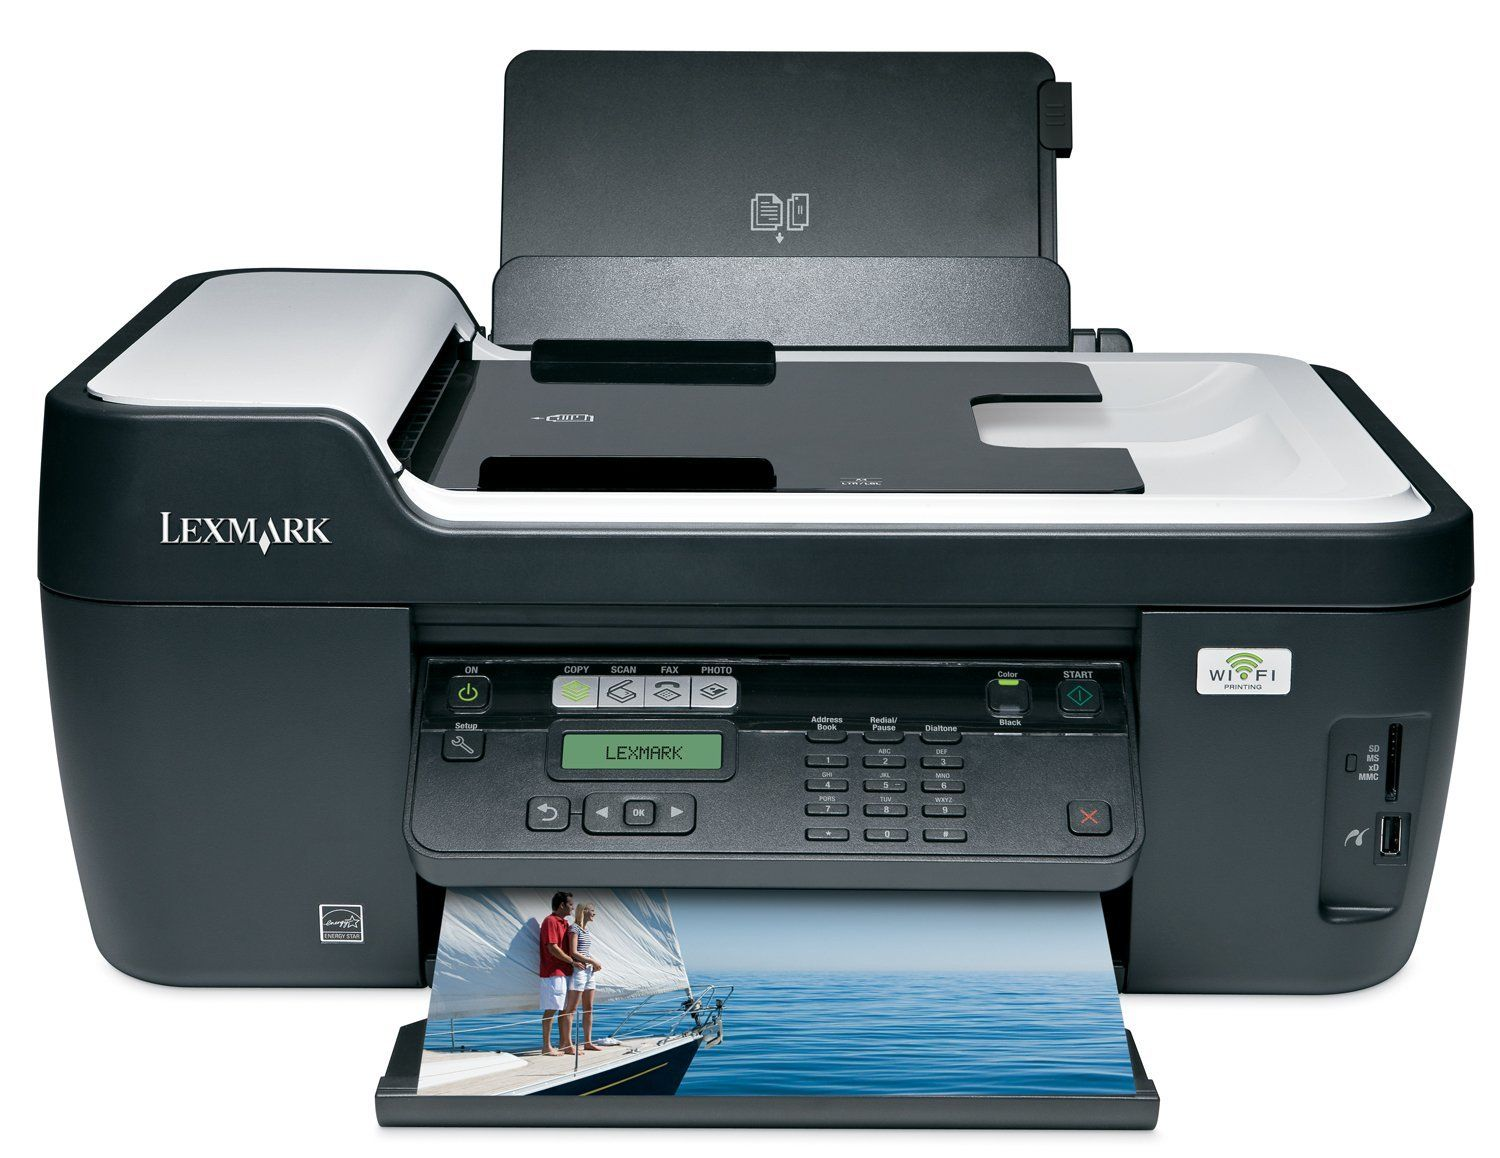 Lexmark Printer Tech Support Call toll free customer